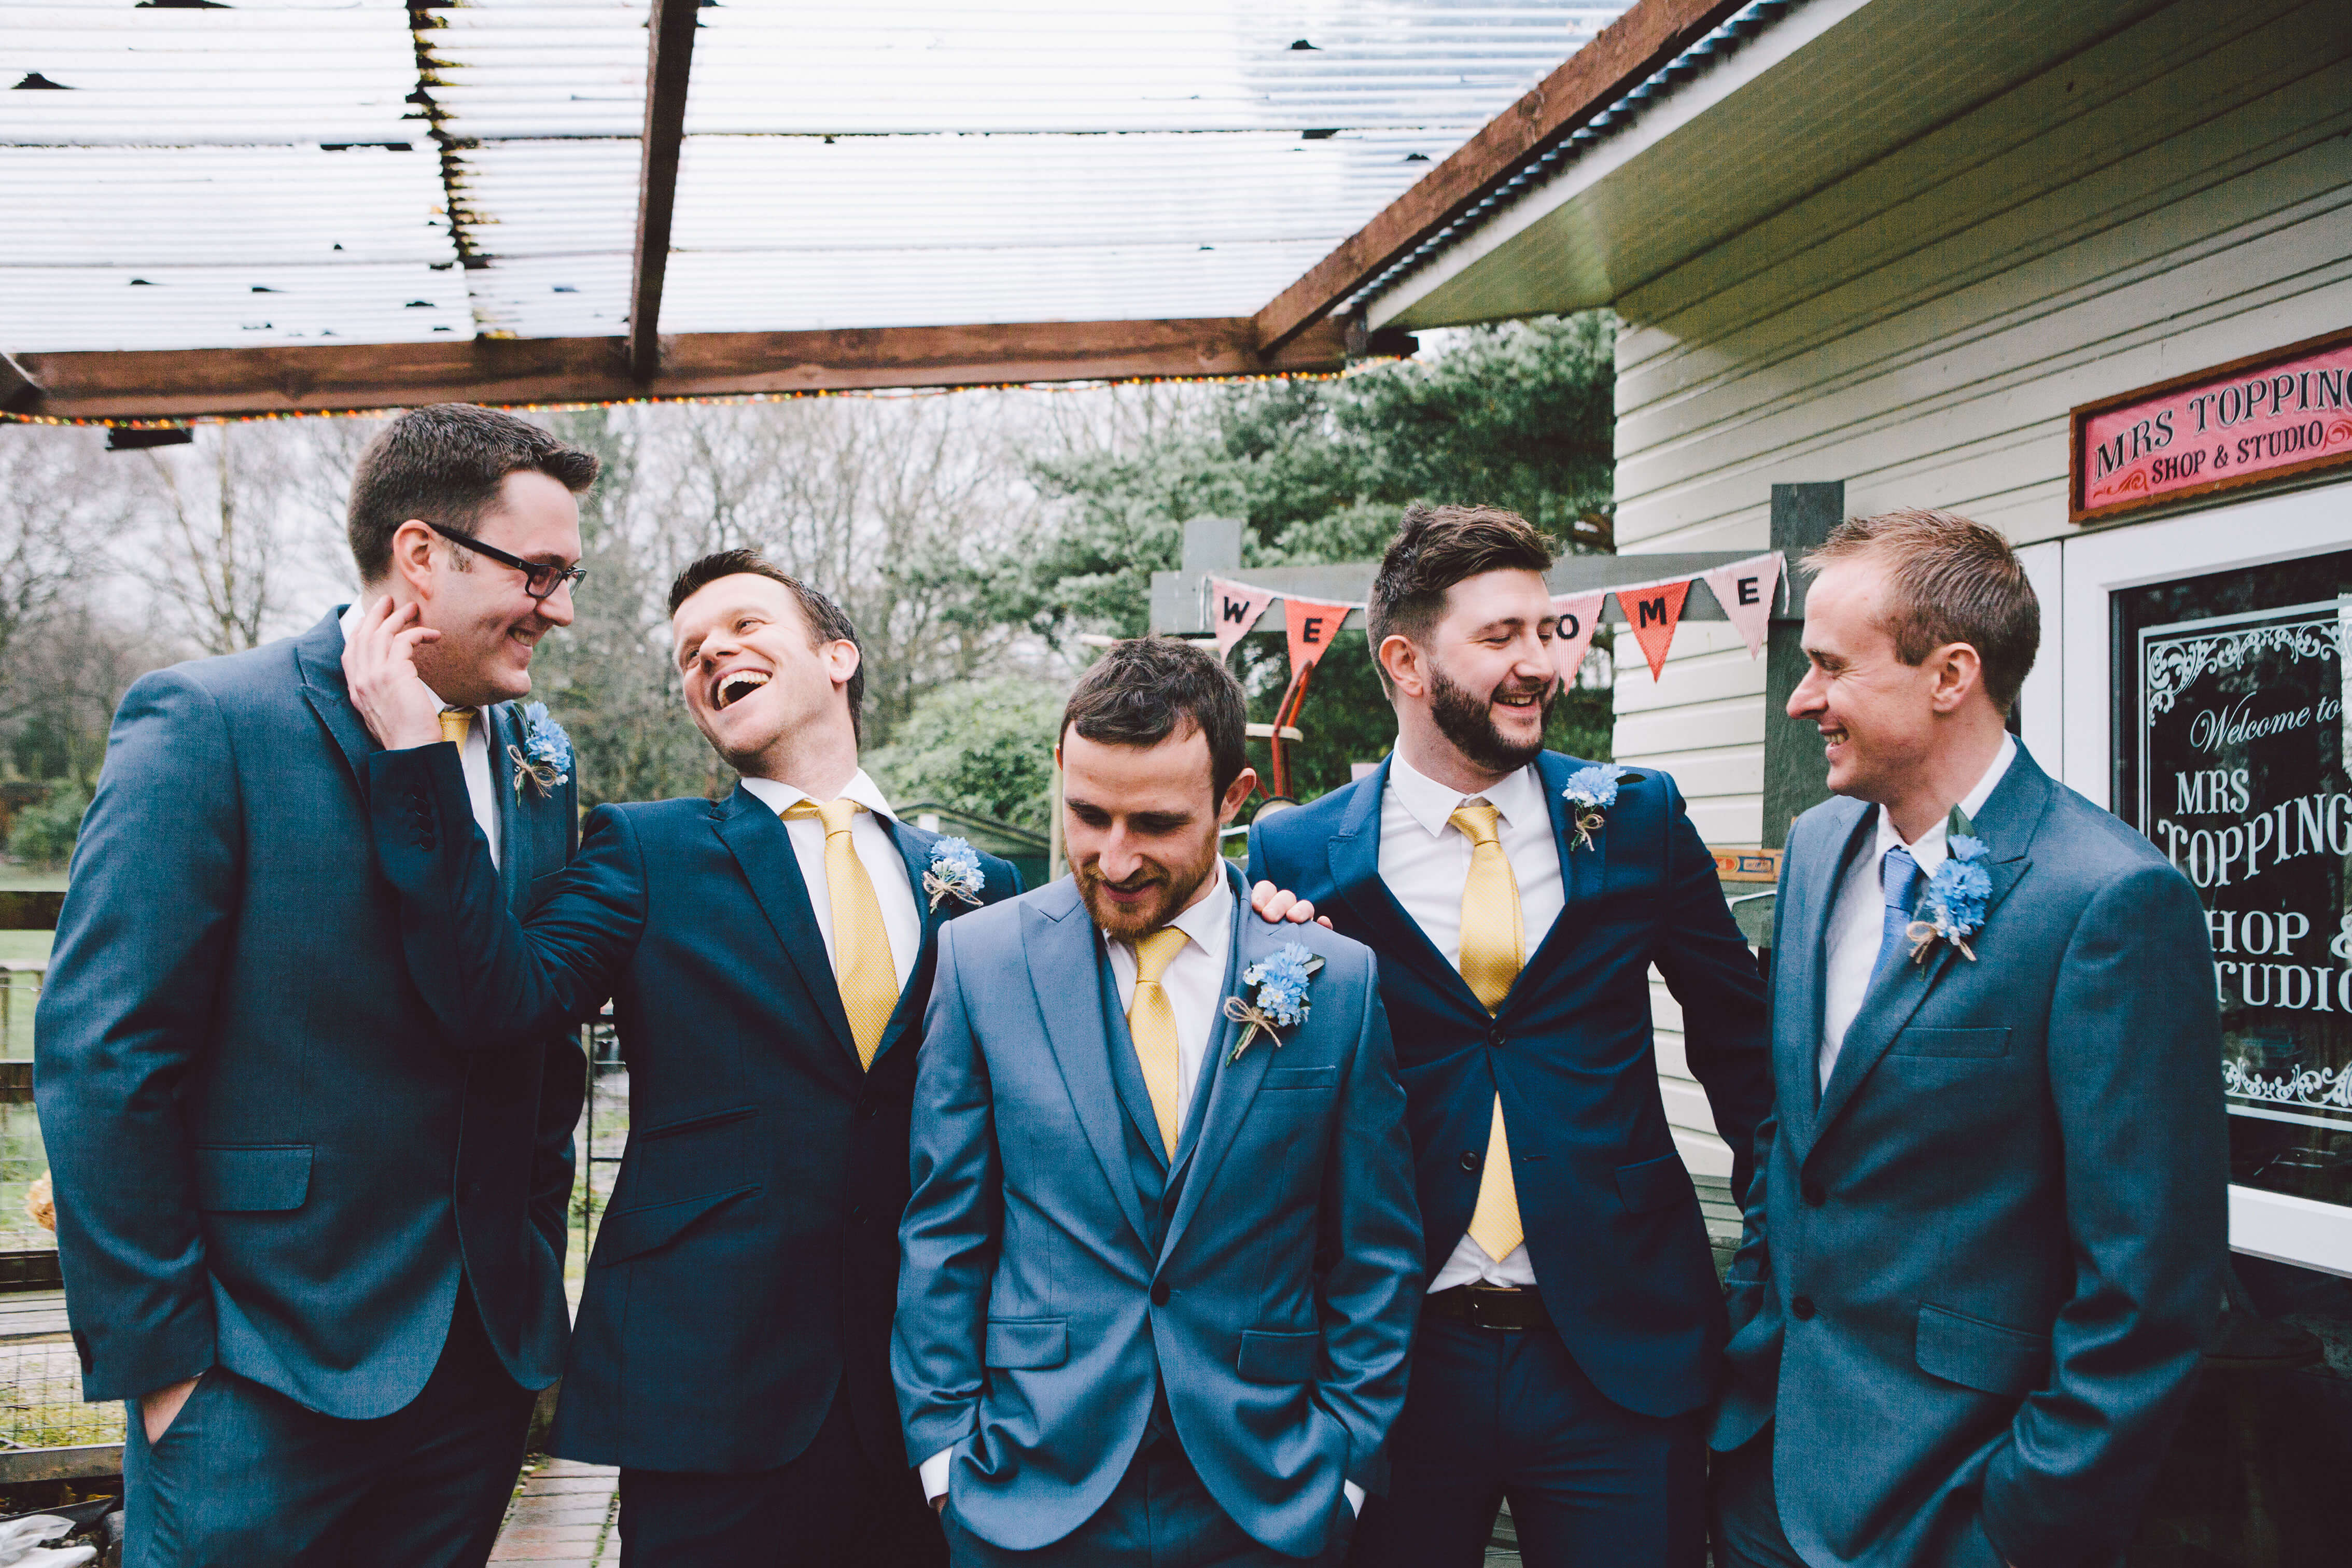 Funny groomsmen group photo at wedding